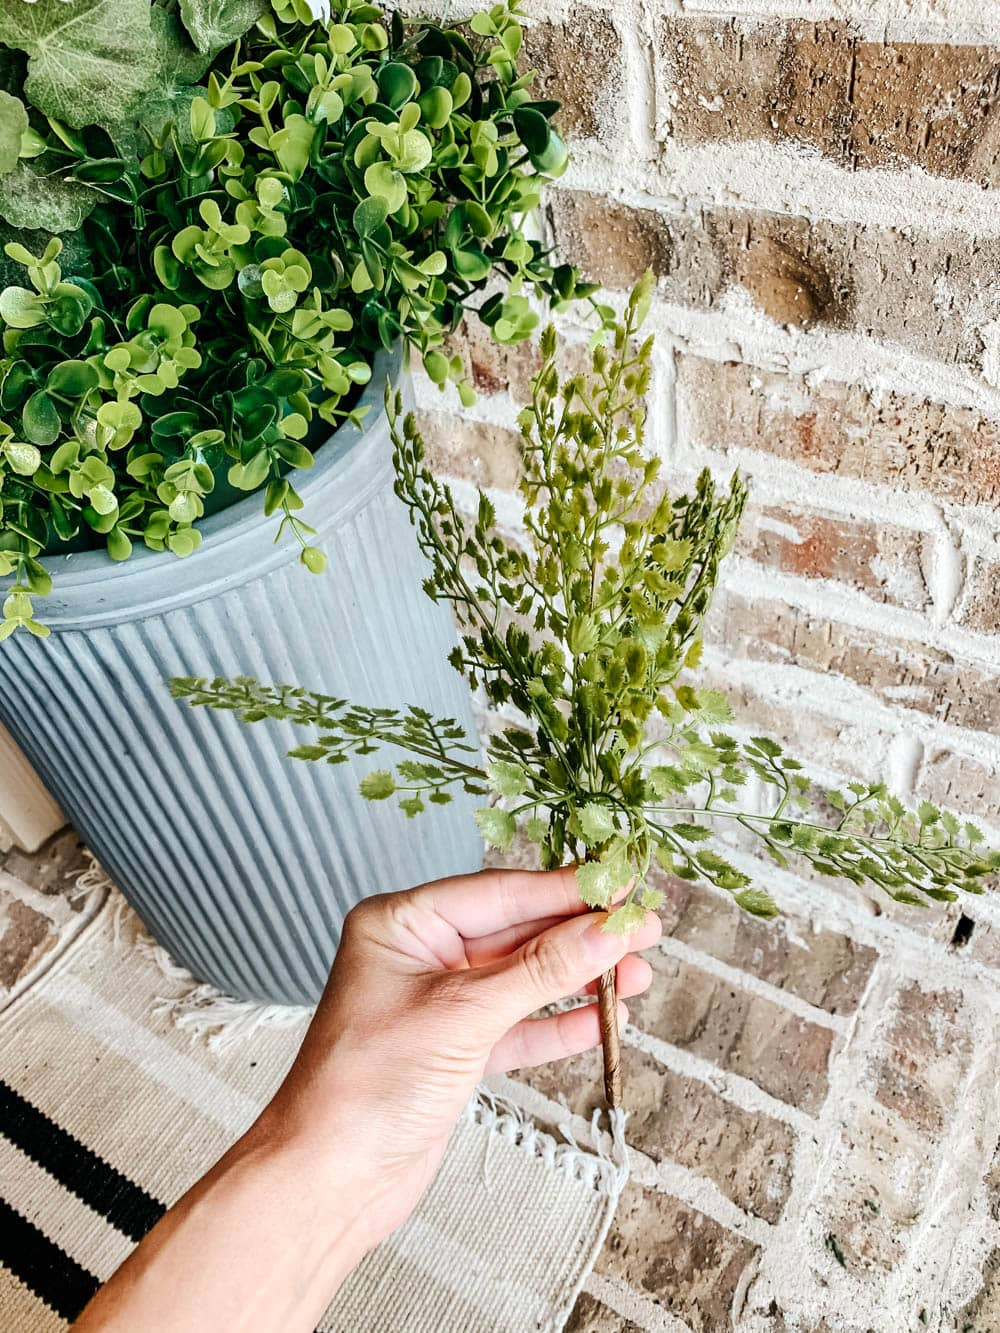 Using artificial plants and flowers outdoors for low-maintenance planter ideas. #ABlissfulNest #outdoorpatio #outdoorplanter